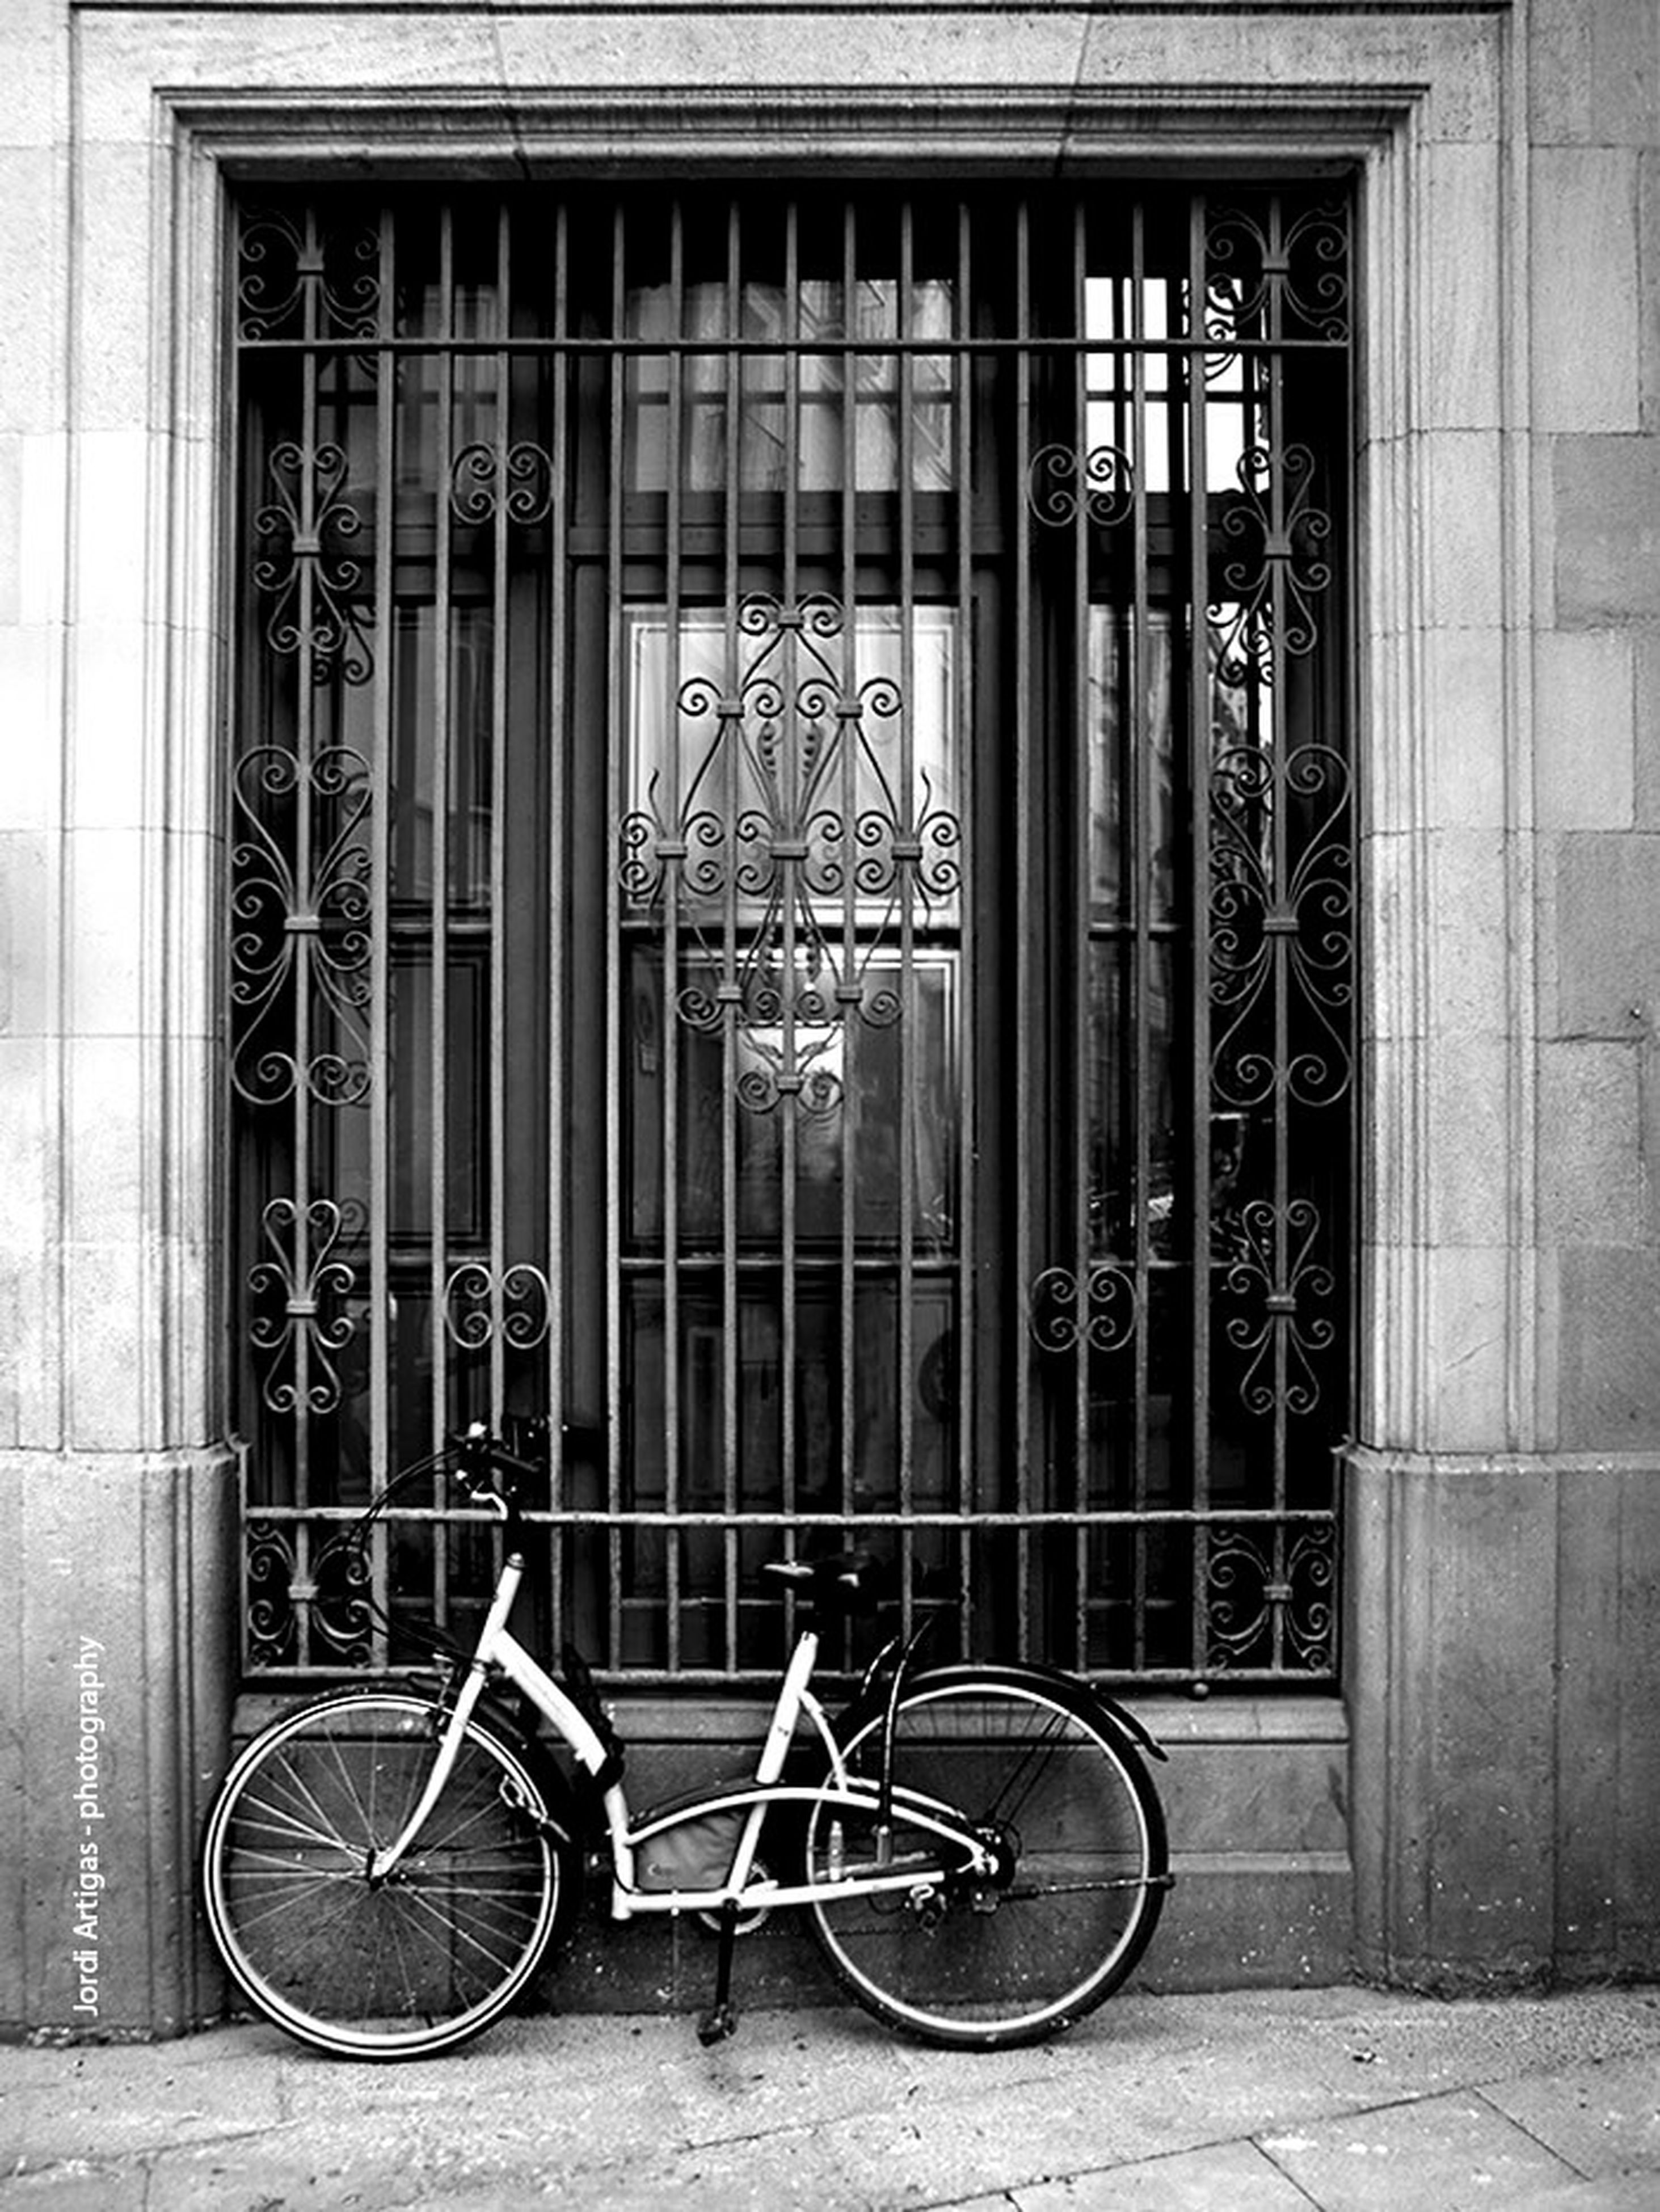 architecture, building exterior, built structure, bicycle, window, stationary, mode of transport, closed, building, door, parked, transportation, land vehicle, city, metal, parking, wall - building feature, gate, brick wall, day